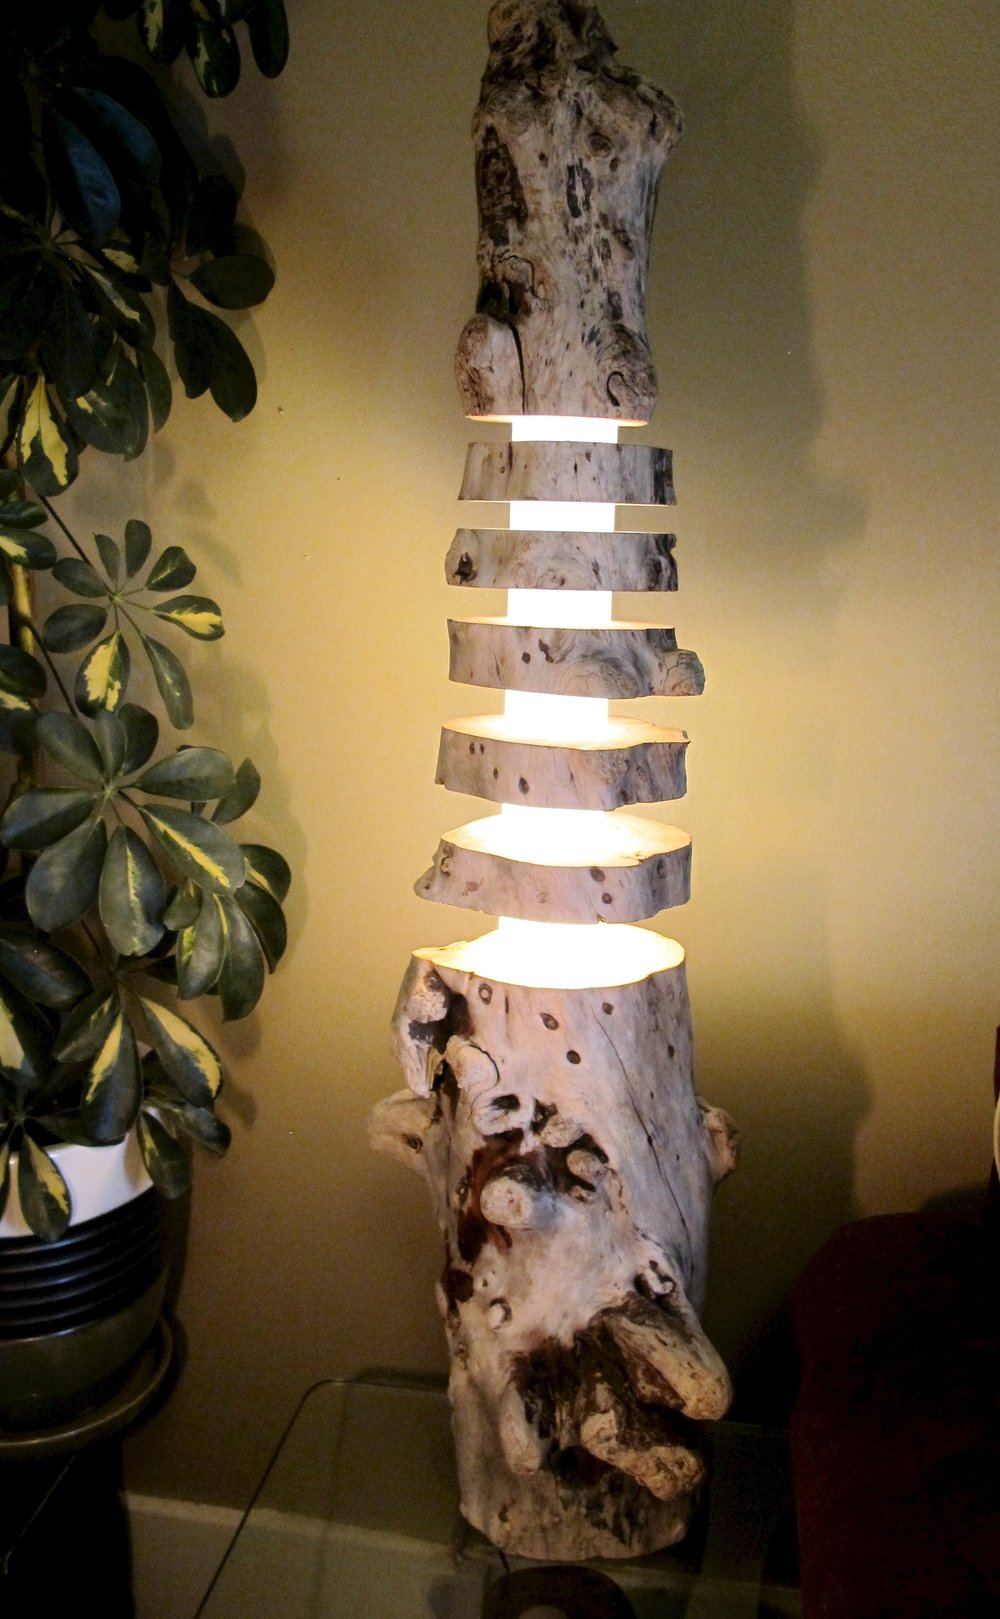 Driftwood spine lamp -  Sun bleached driftwood glows through a centre column with disk spacing evoking the idea of a vertebrae.  For sale $299.